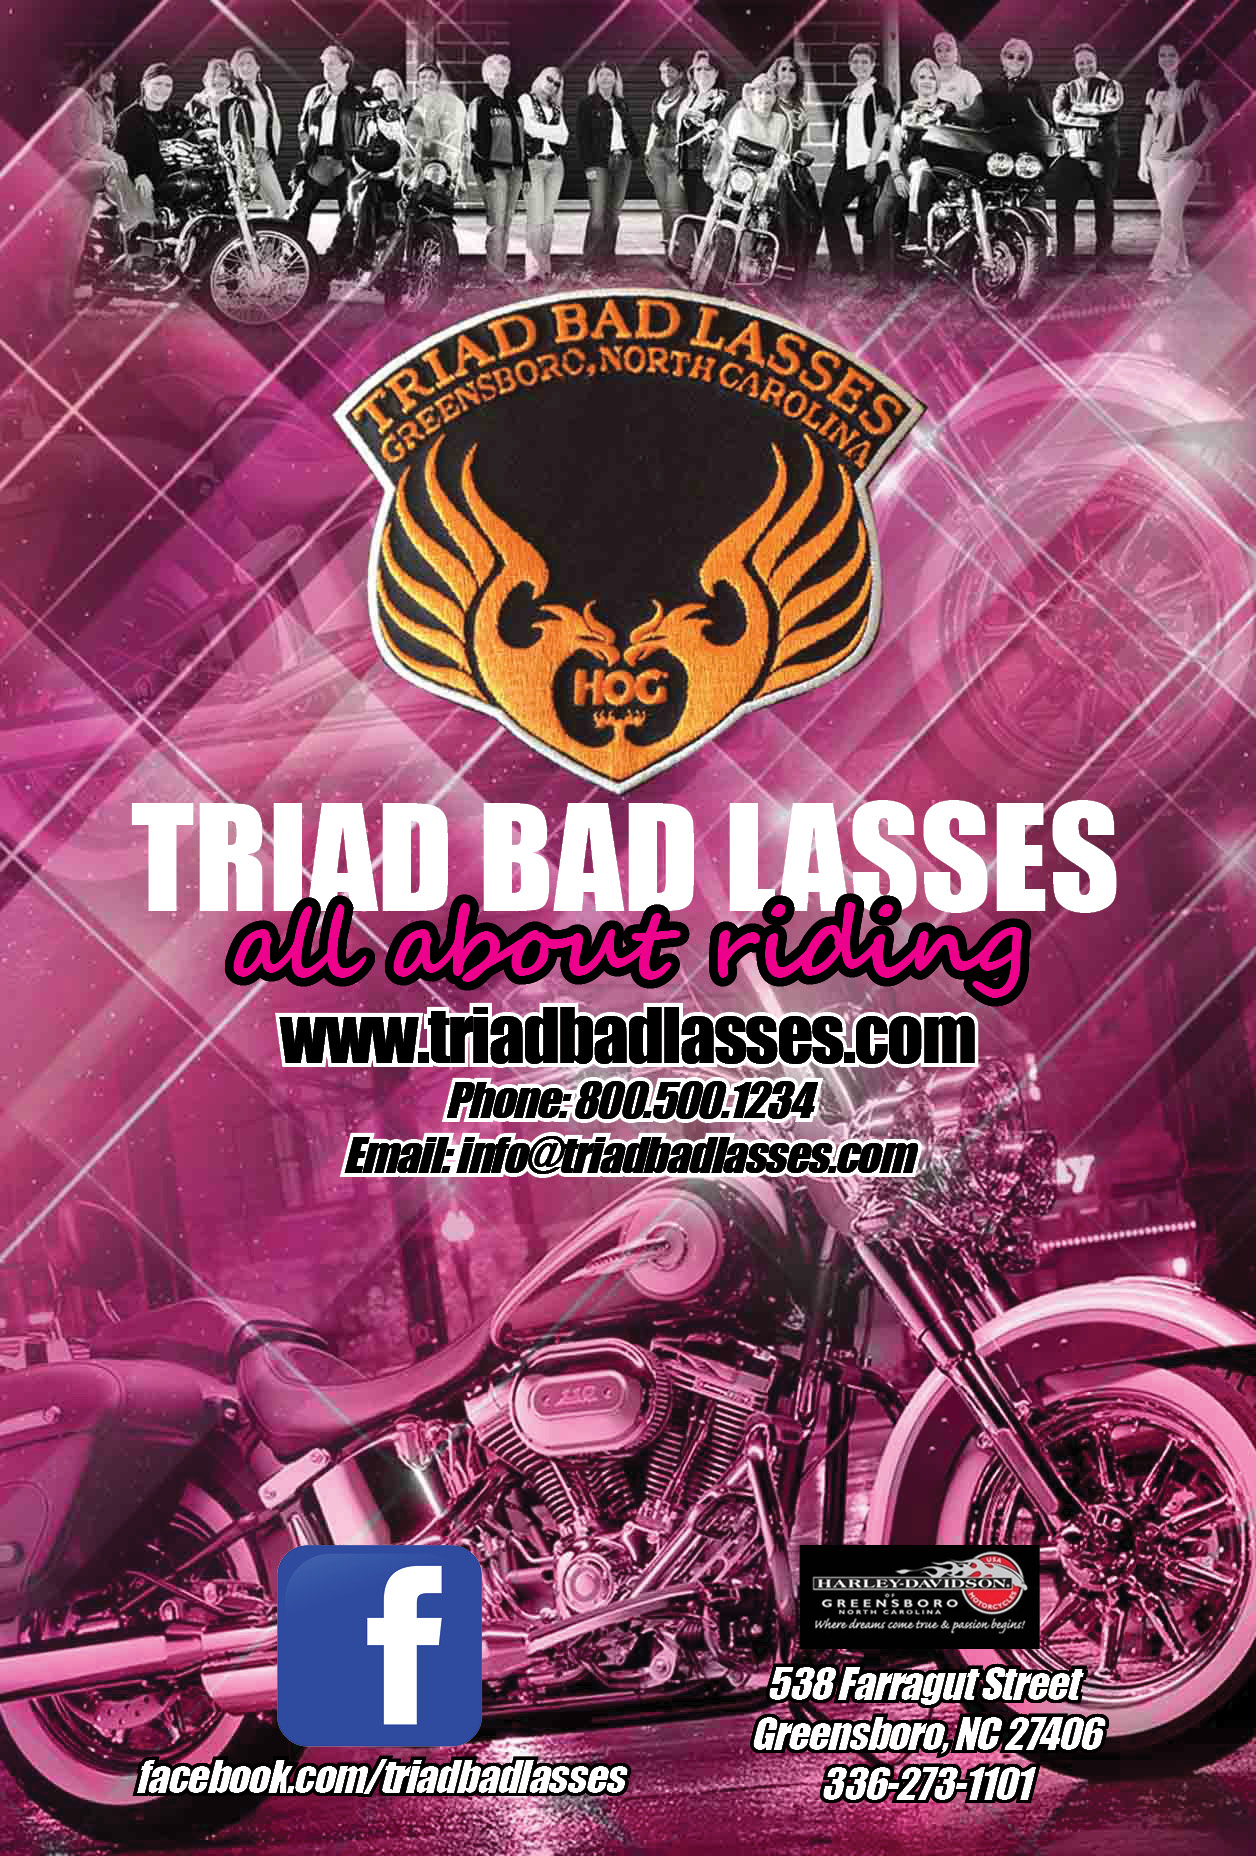 Triad Bad Lasses_flyer.jpg